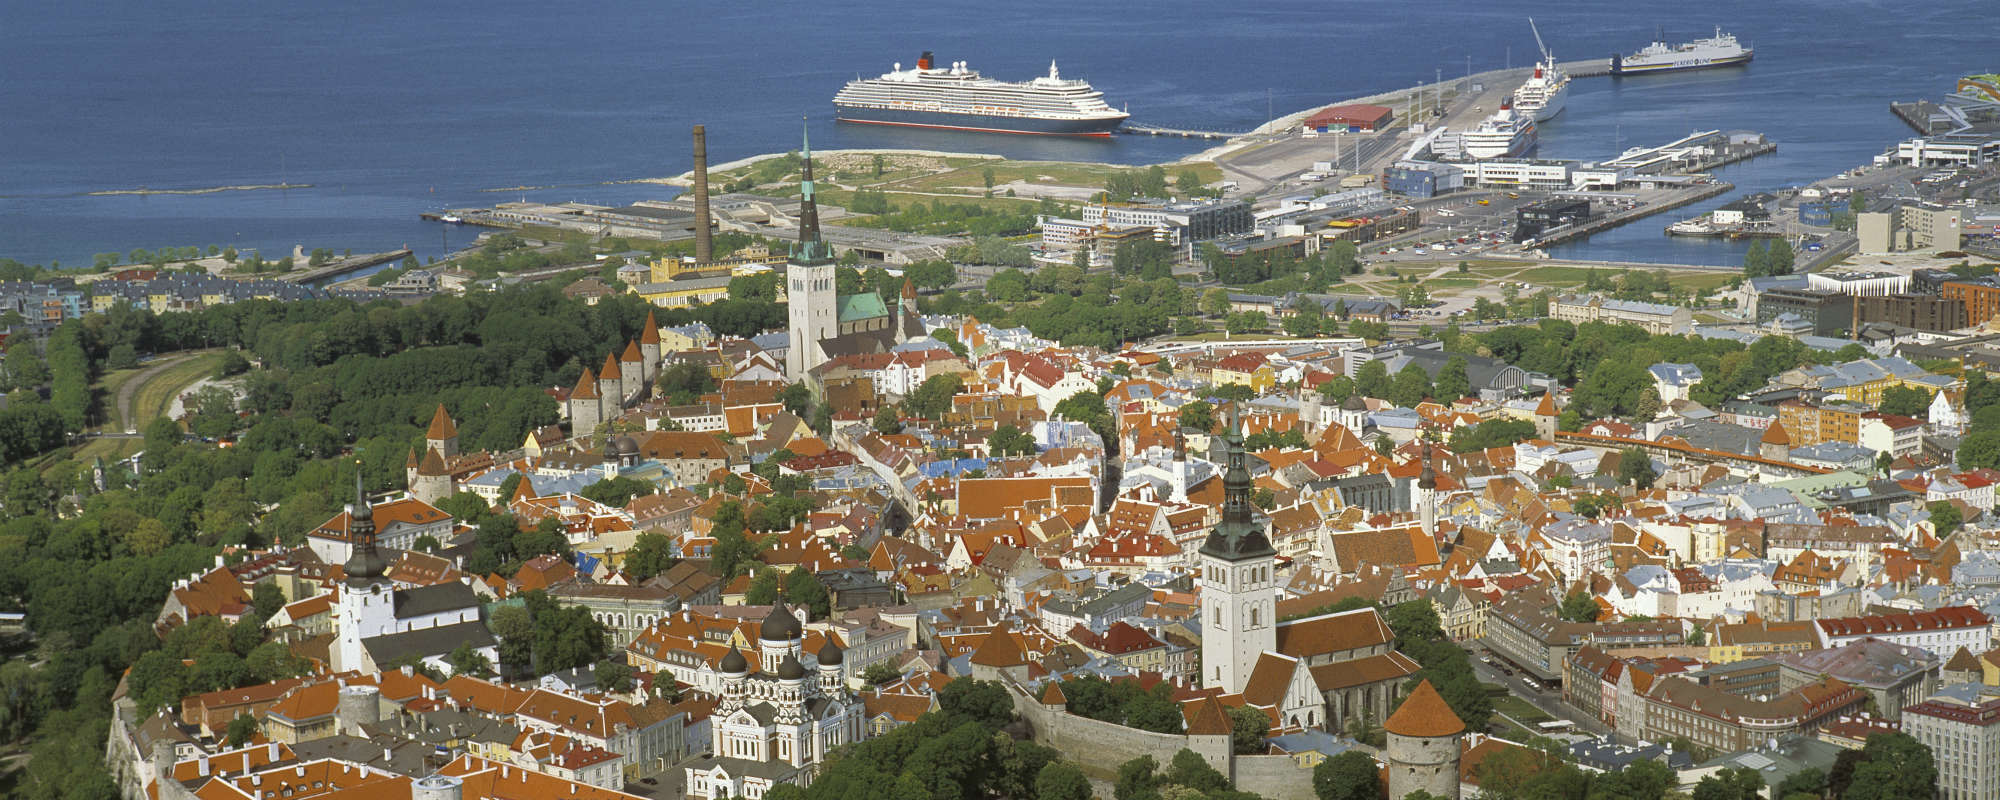 View to the Tallinn´s Old Town. Picture by Allan Alajaan